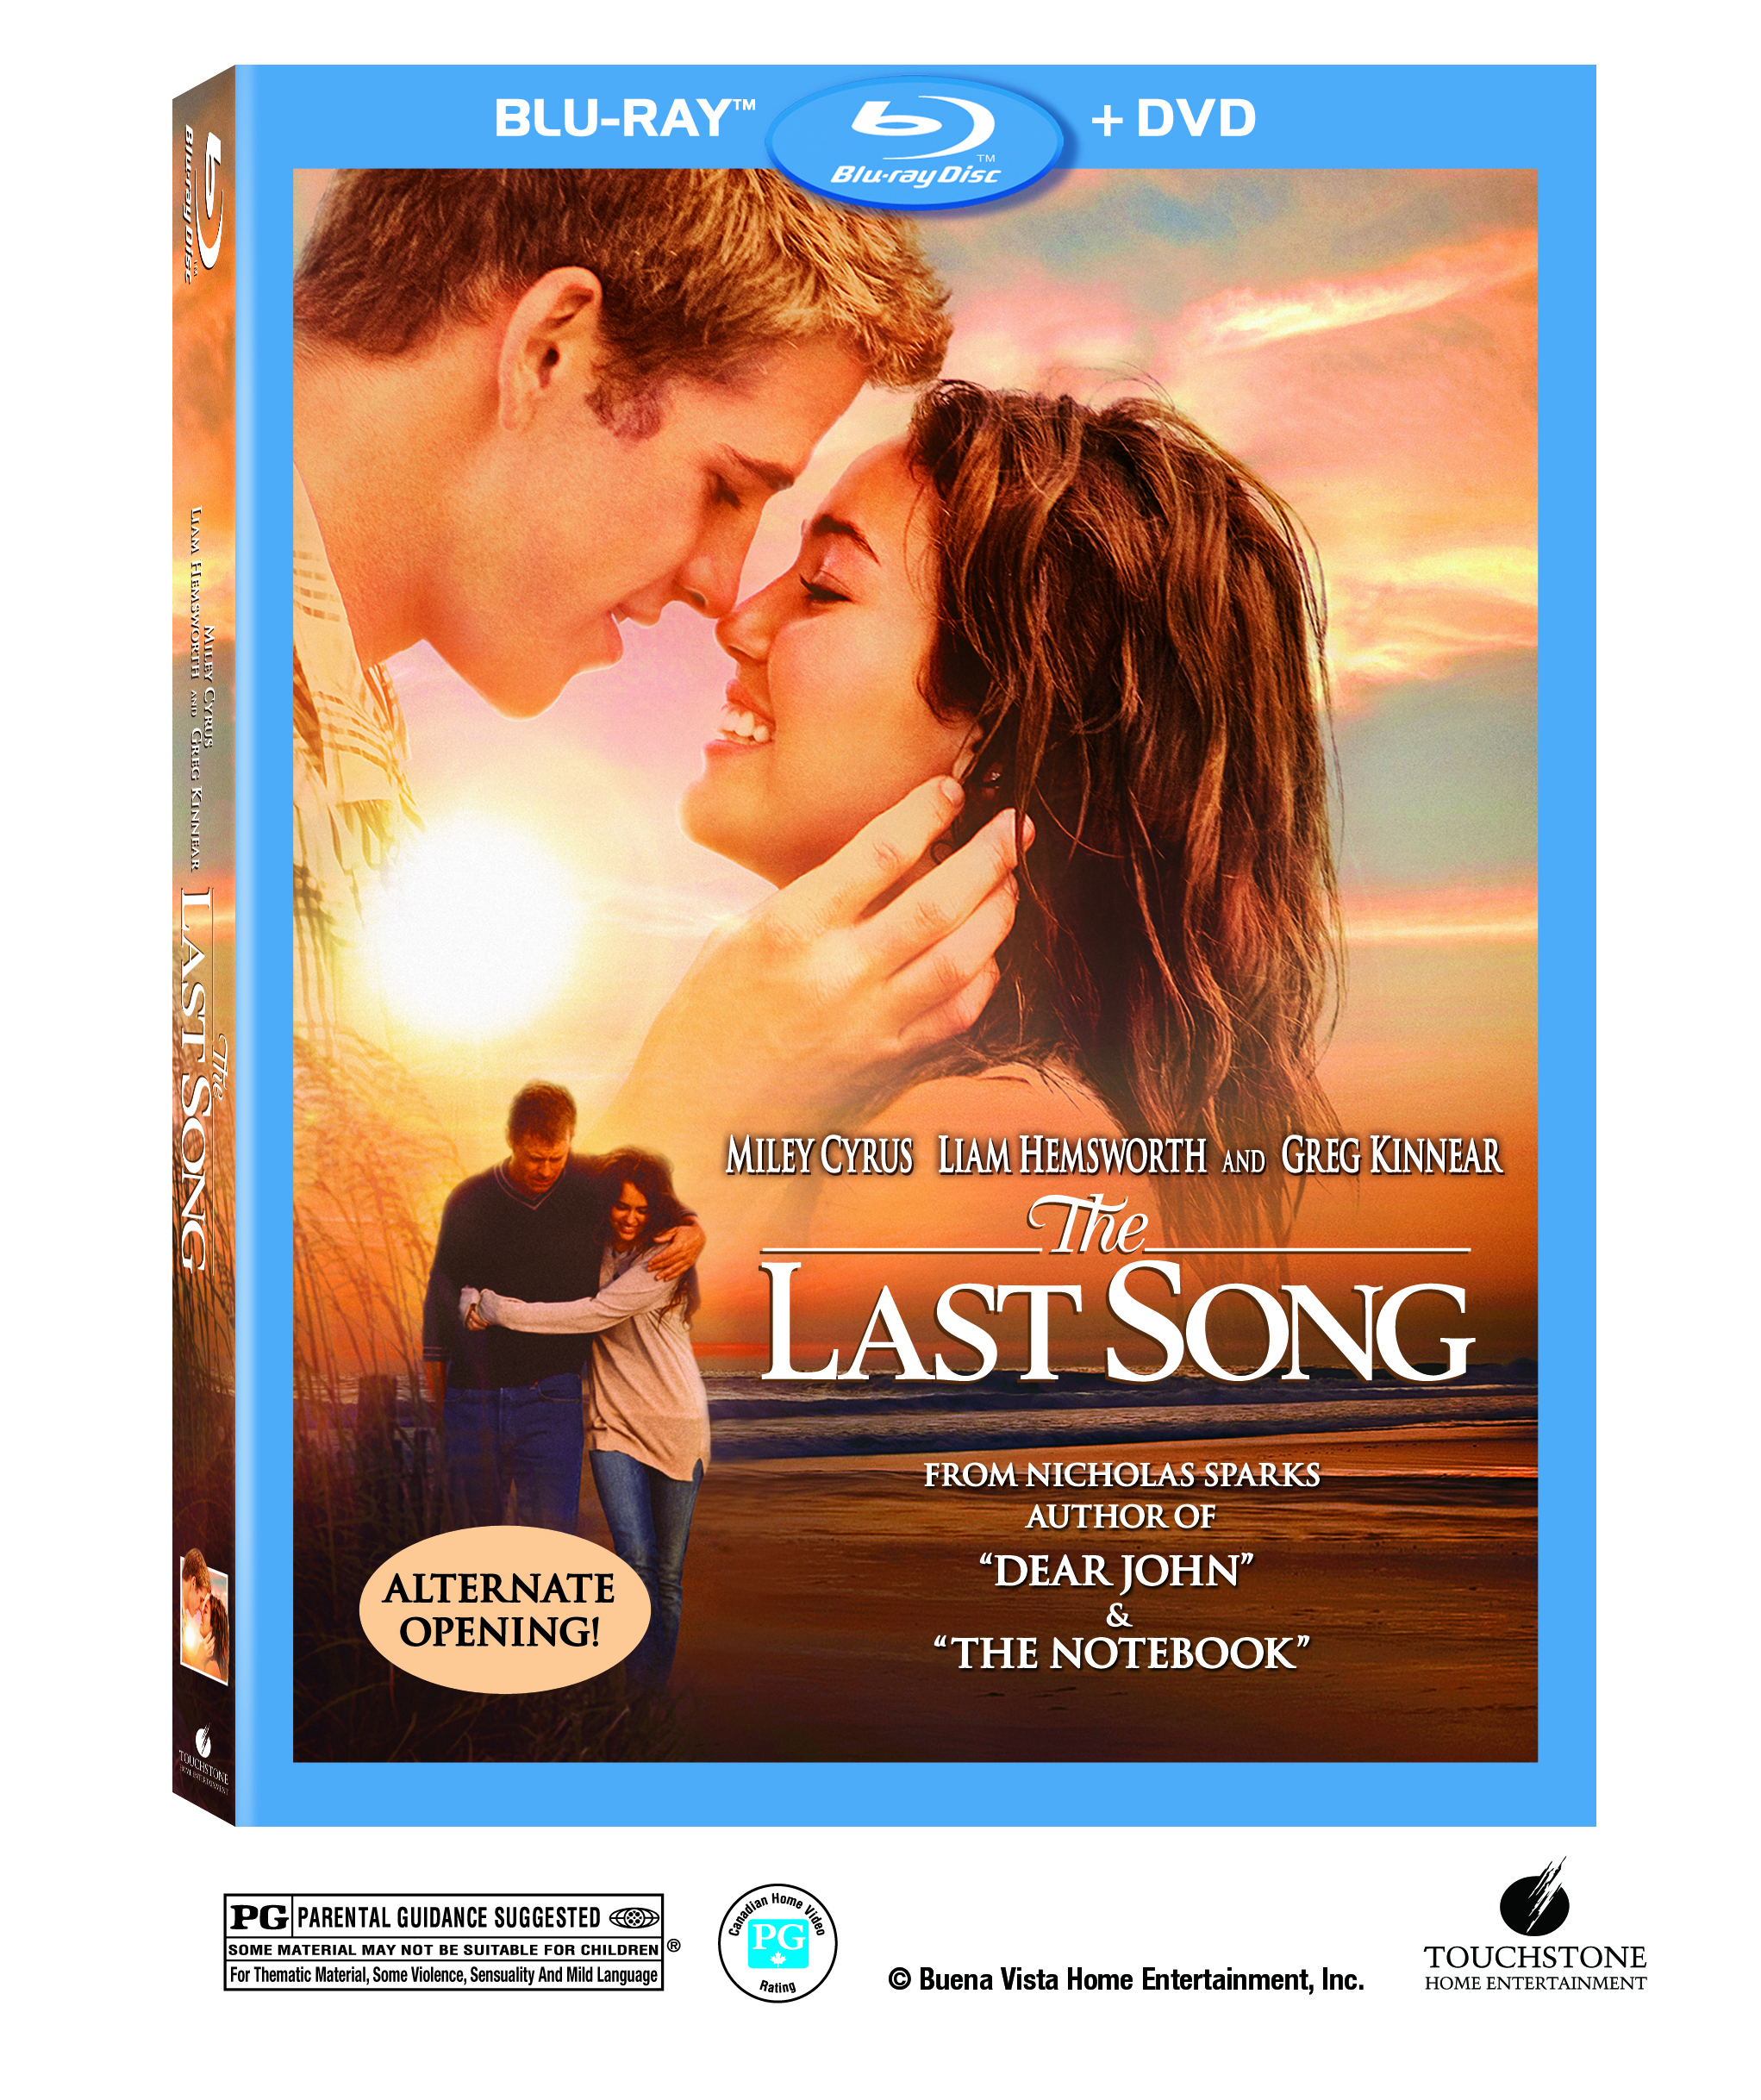 The Last Song image